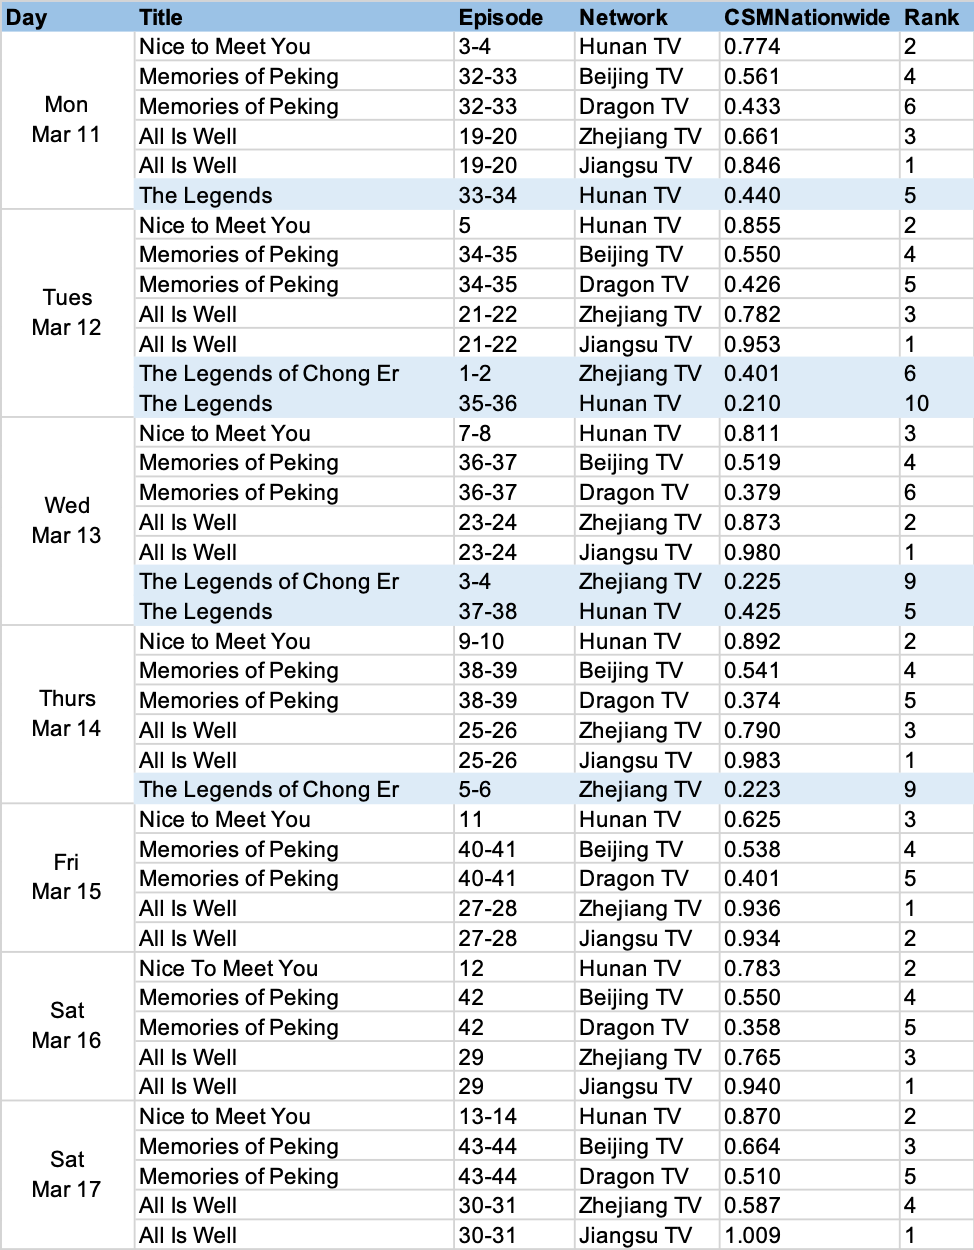 csm nationwide